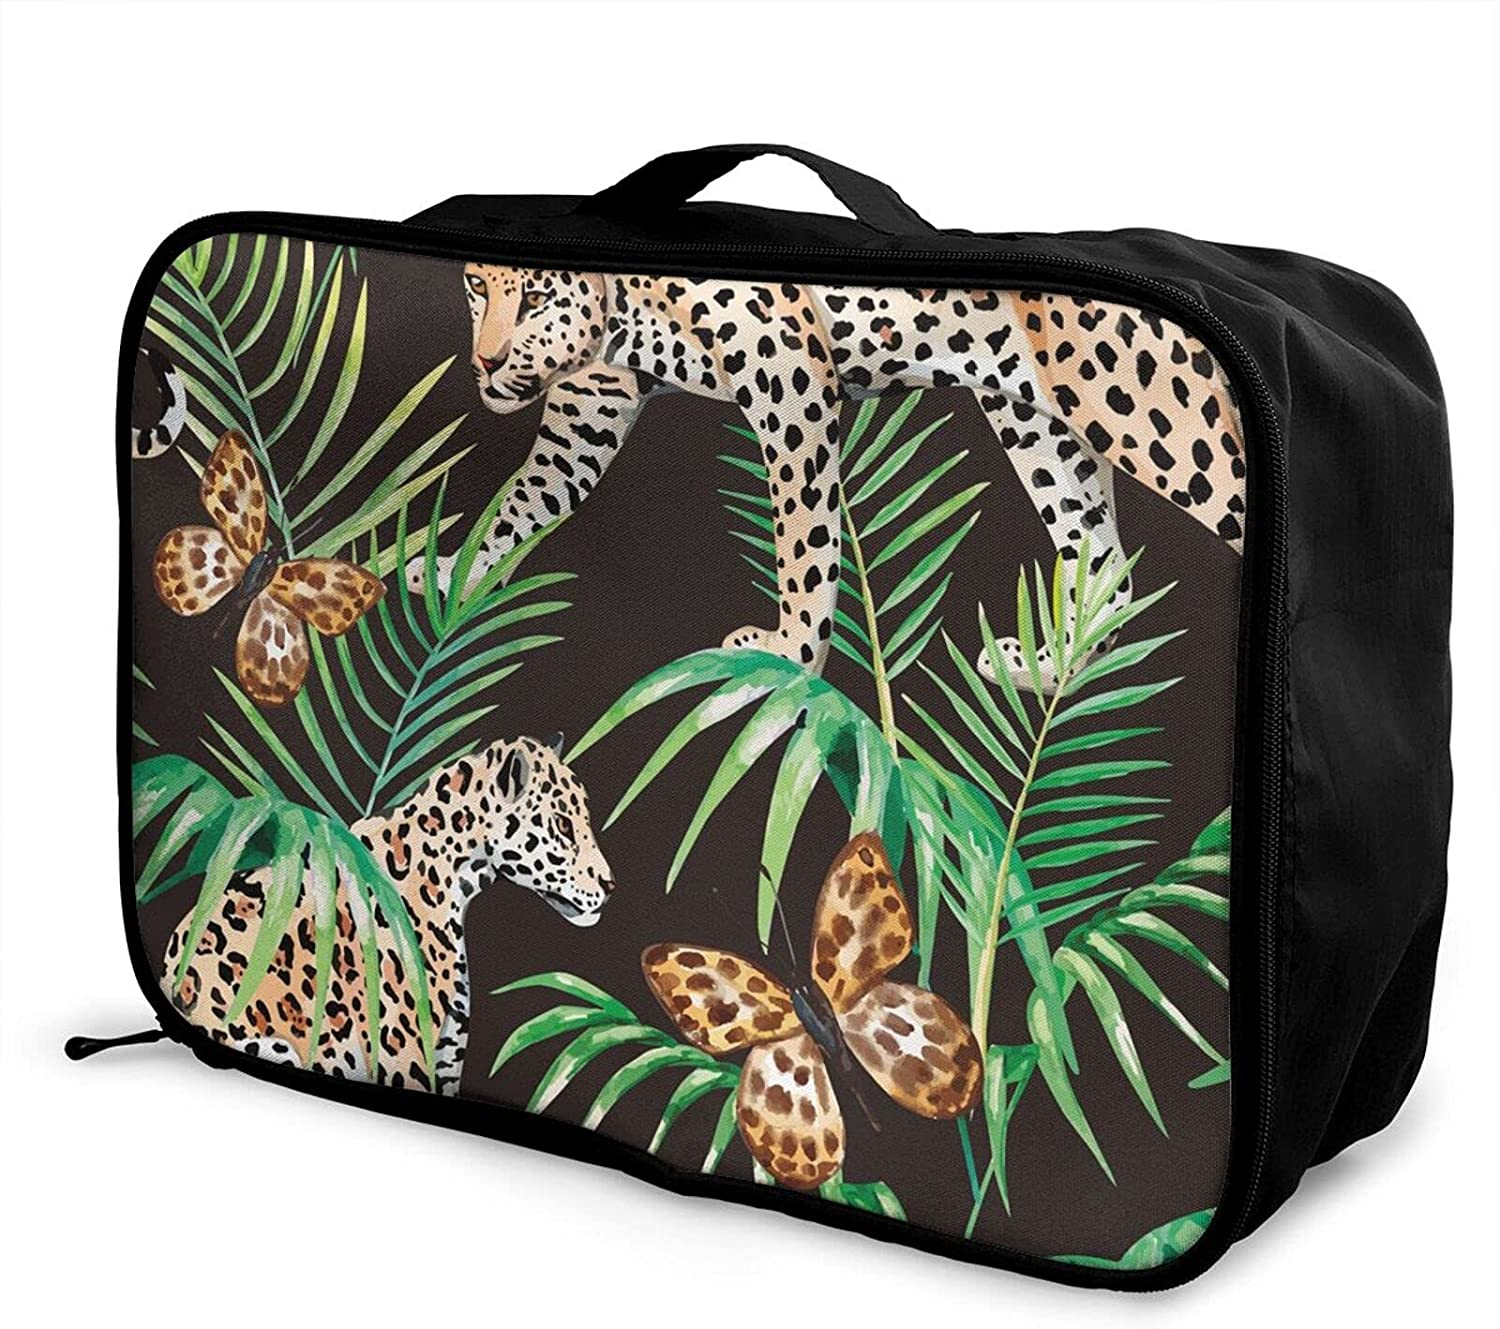 Foldable Travel Bag Tote Gold Panther Black Car Lowest price challenge Regular store Jungle Butterfly